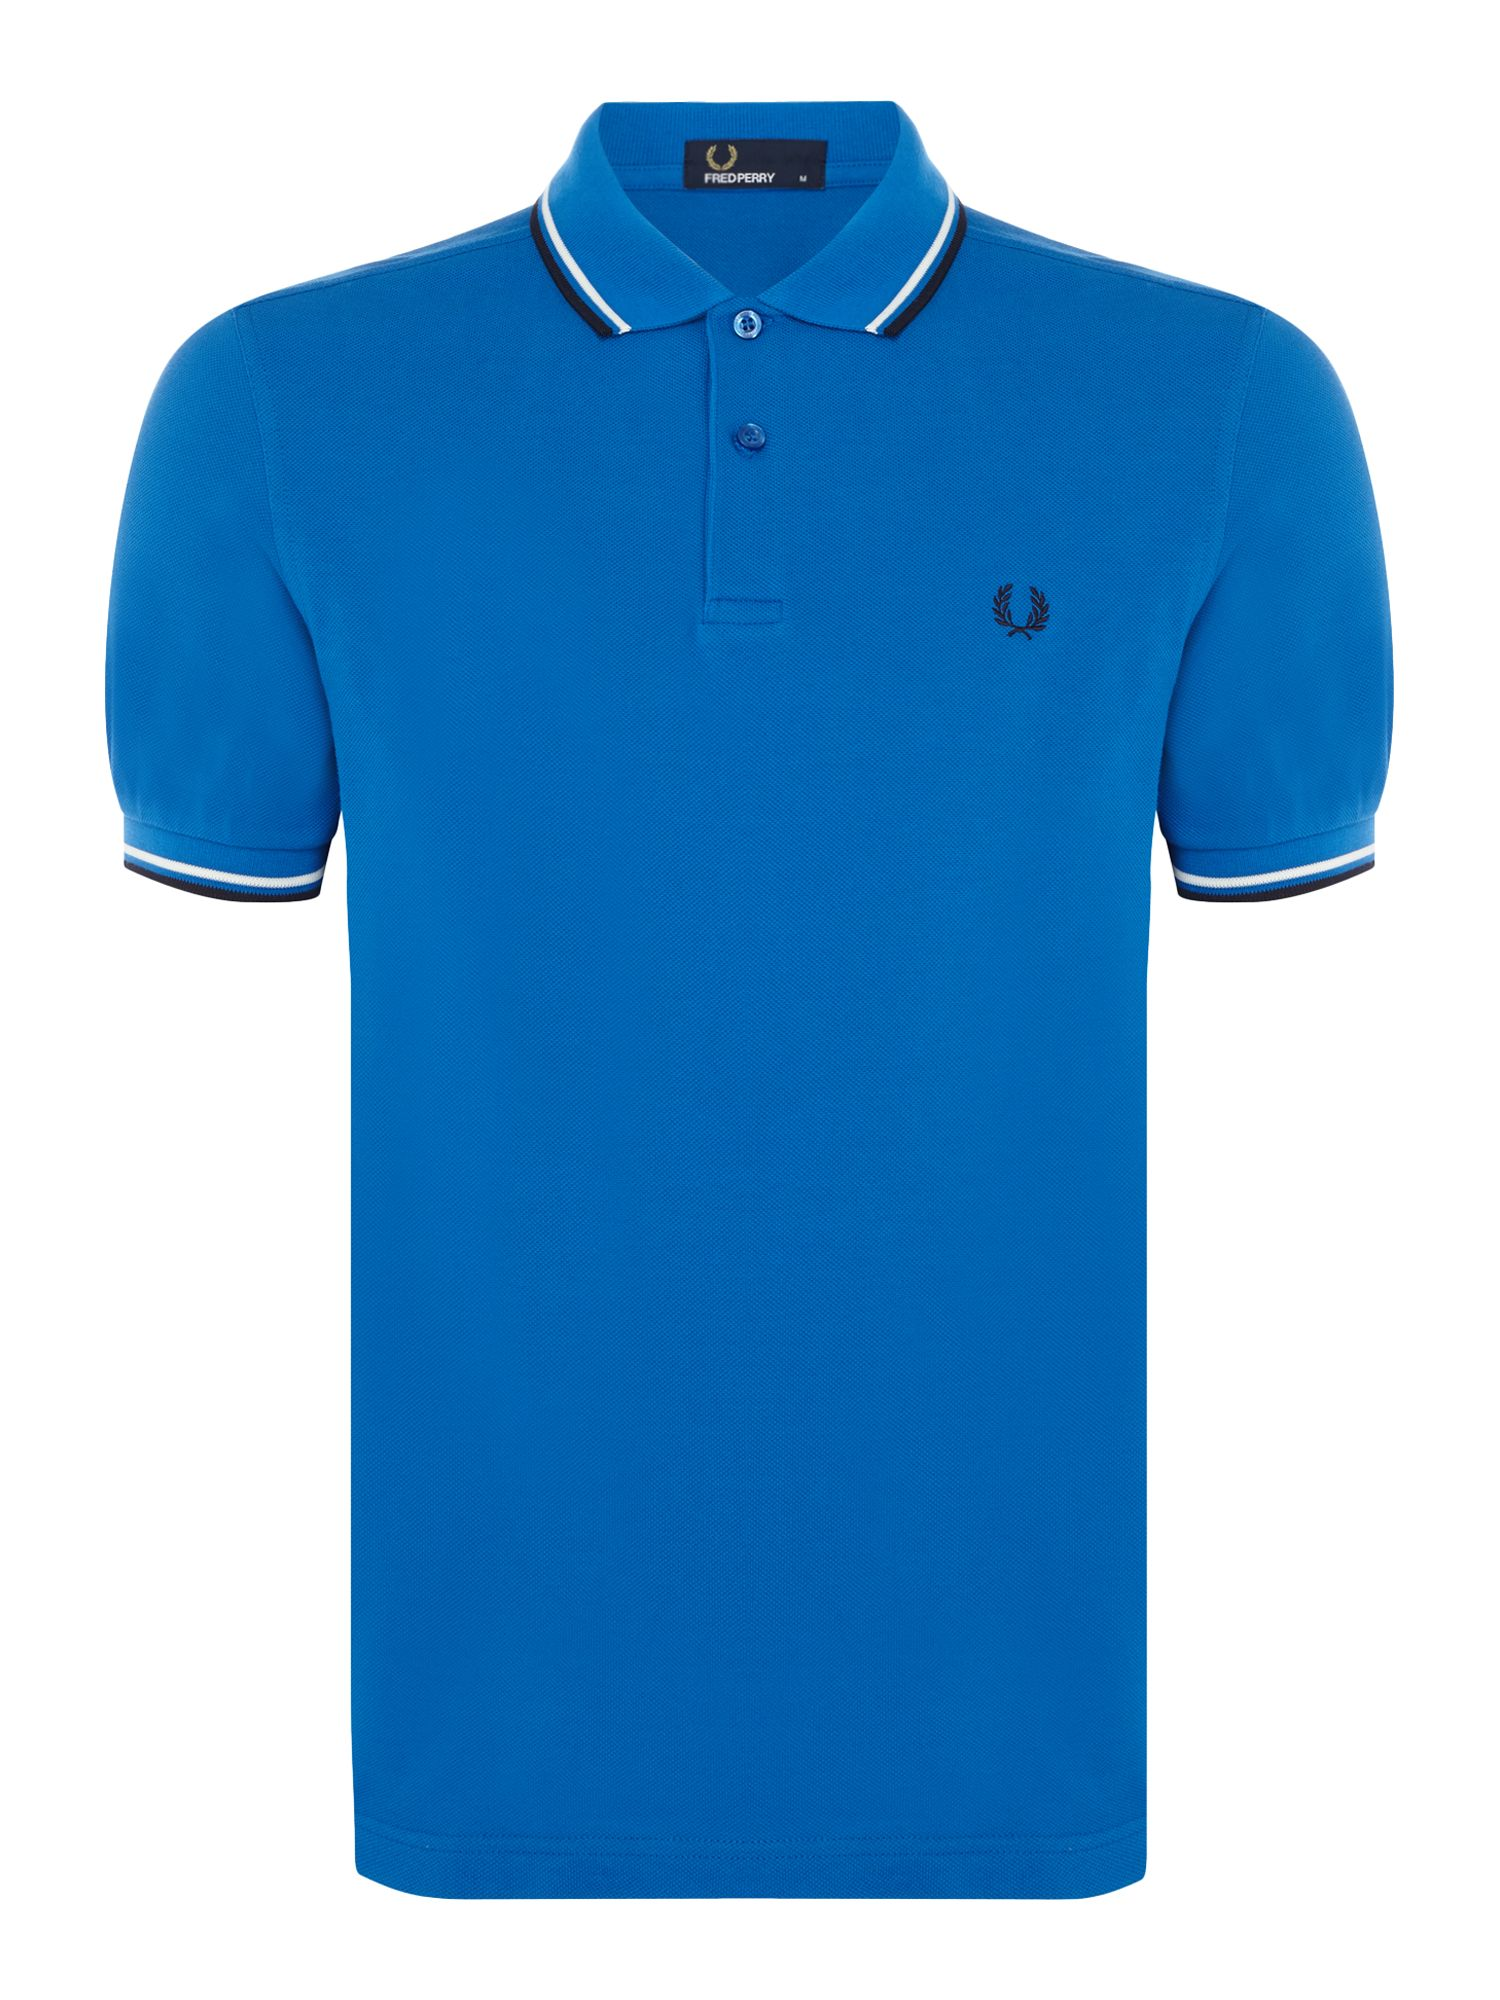 Men's Fred Perry Plain Twin Tipped Polo Shirt, Cobalt